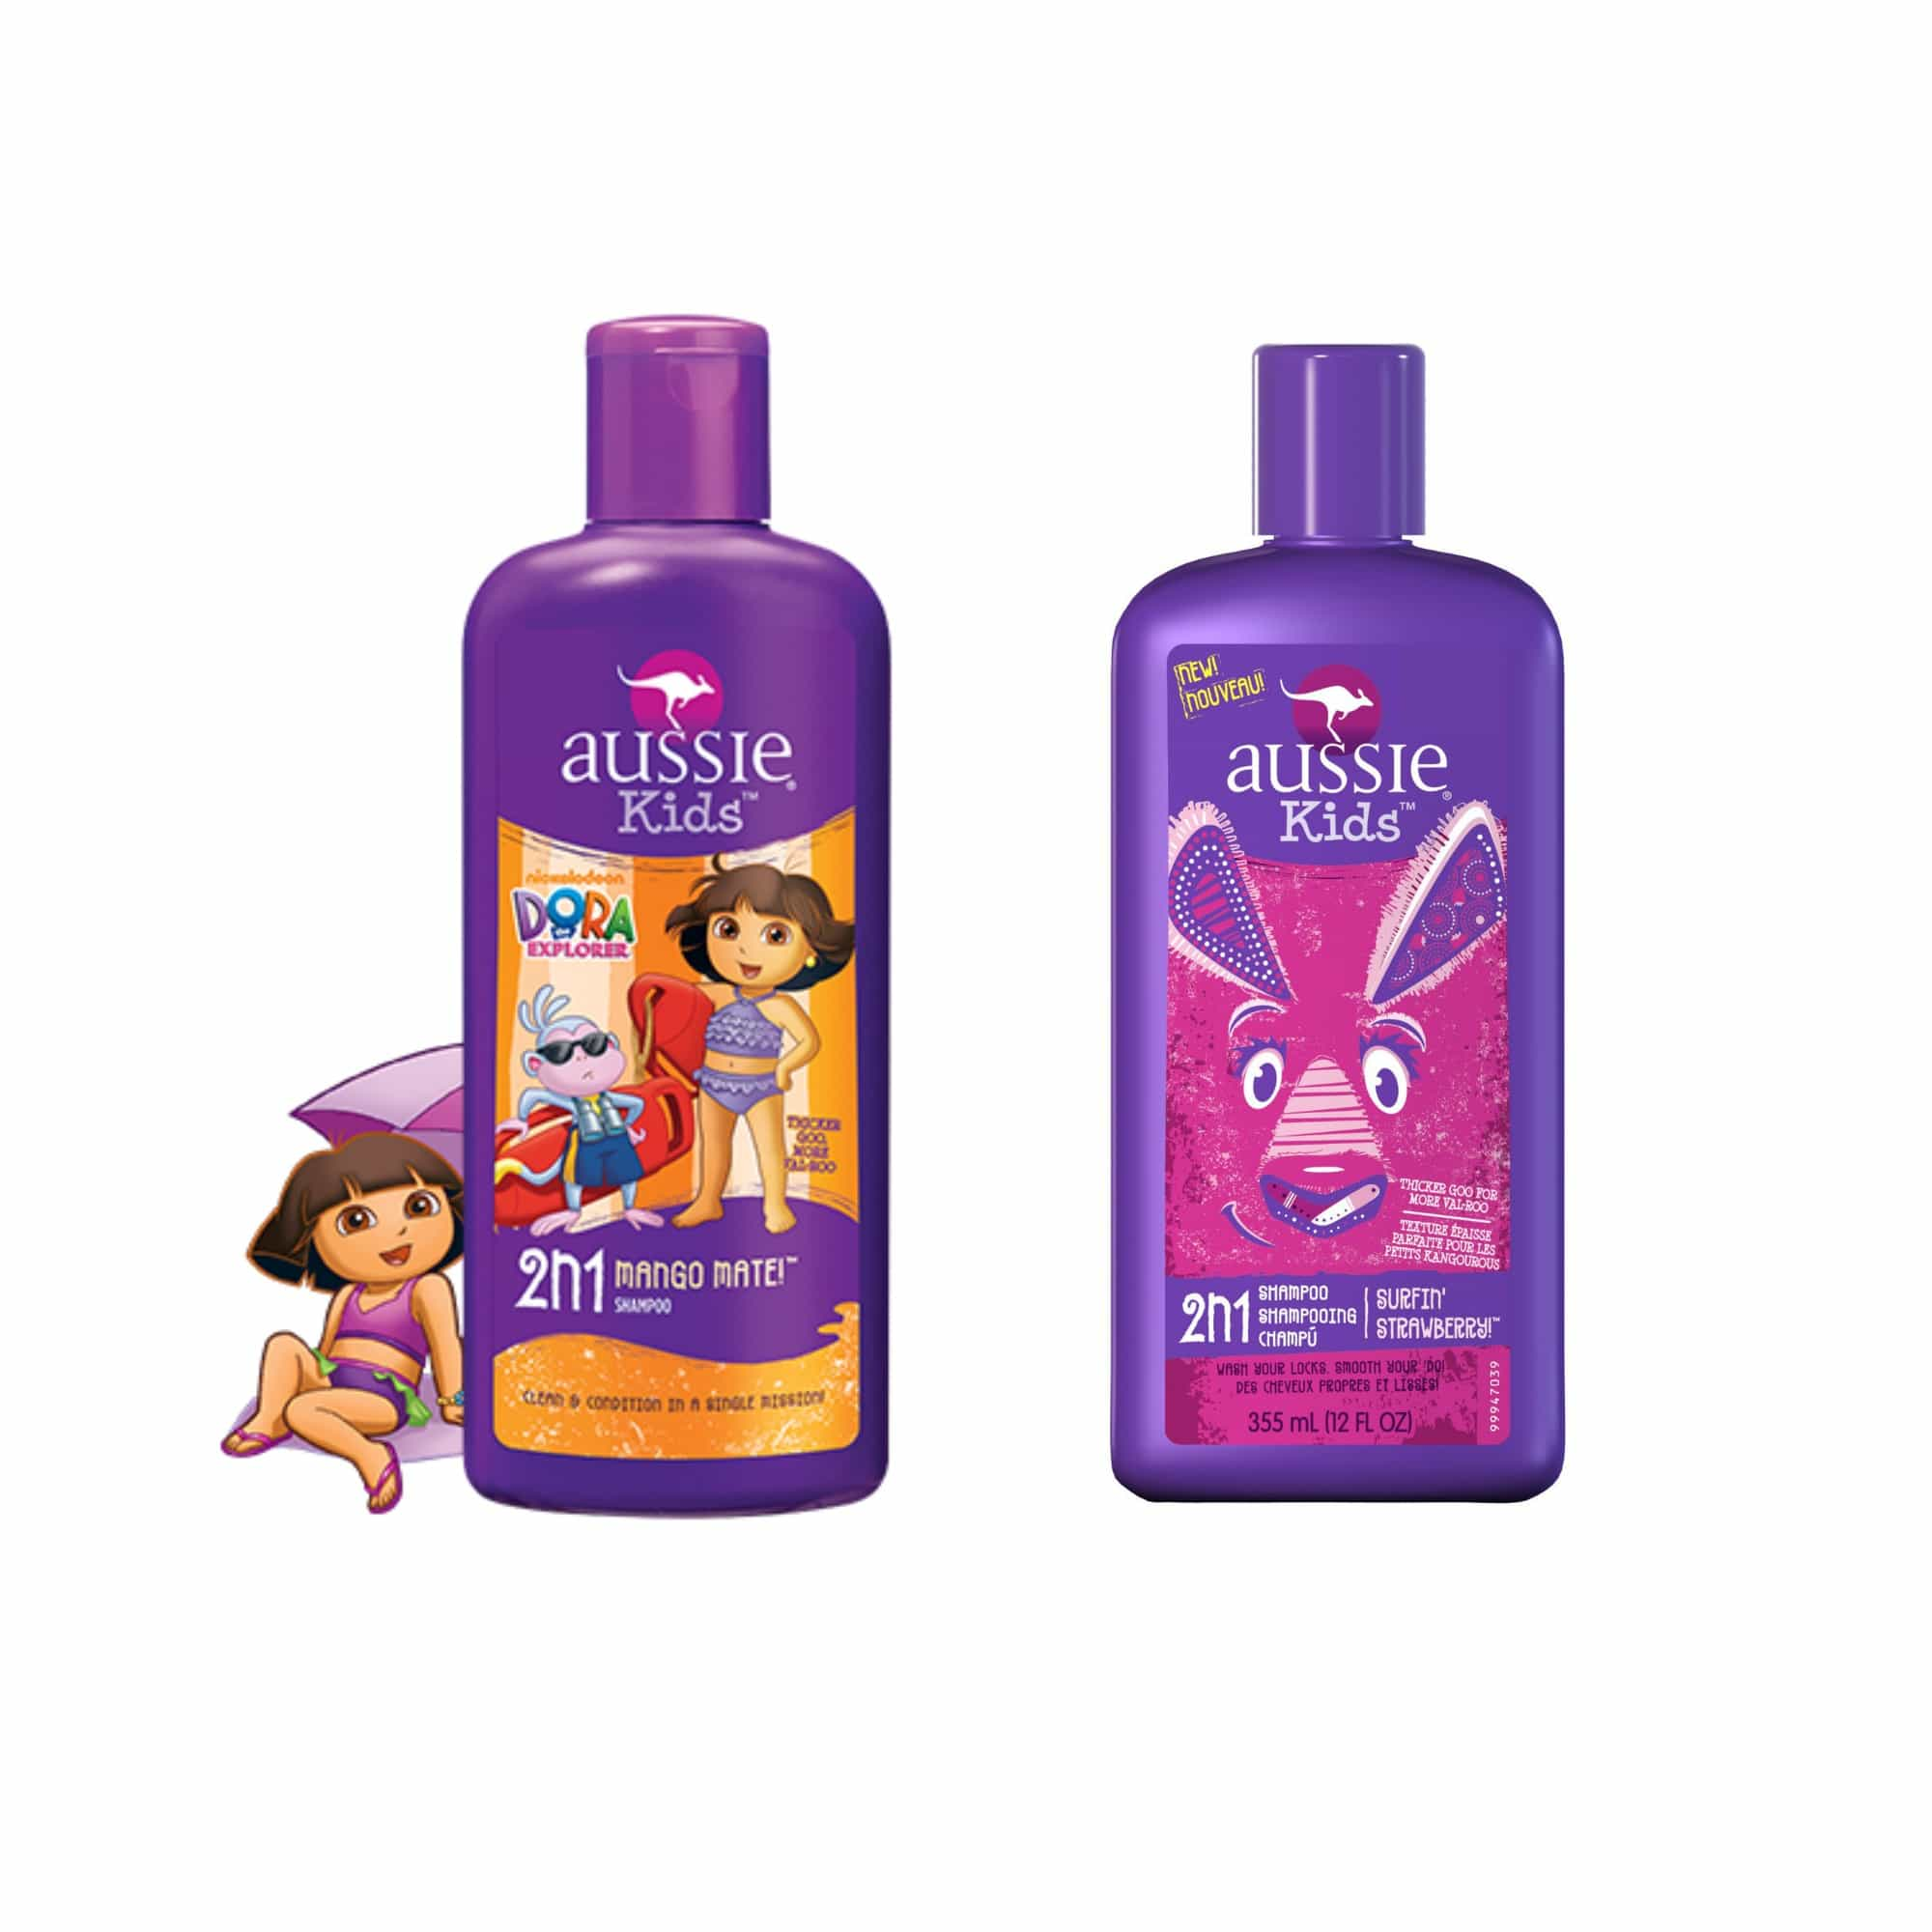 Aussie Shampoo Aussie Kids Shampoo Only 99 At Target I Don T Have Time For